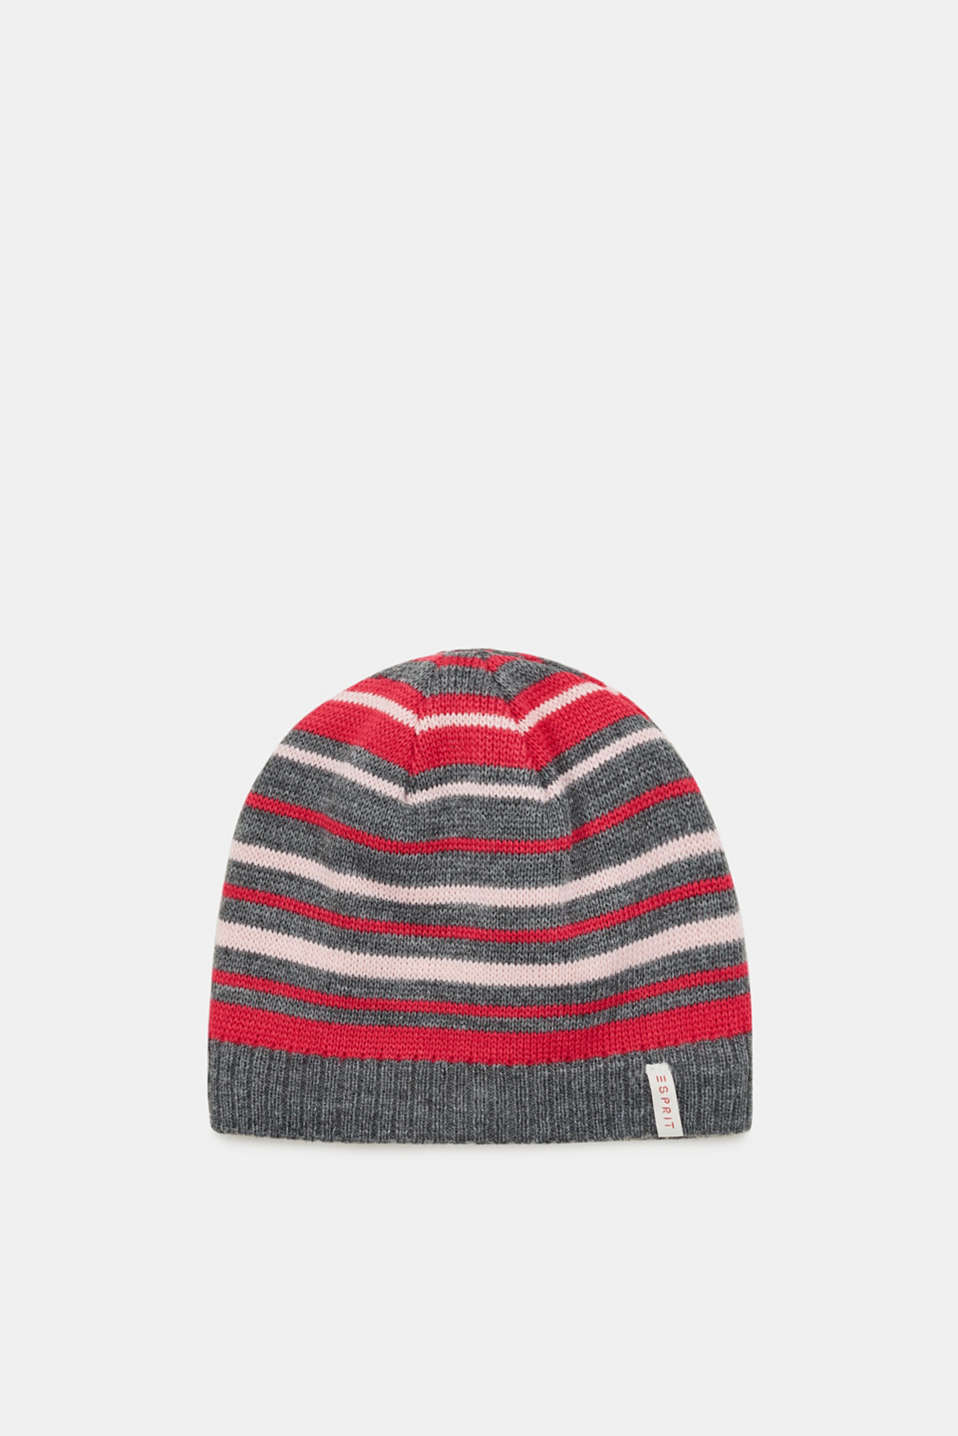 Esprit - Striped knit hat with fleece lining